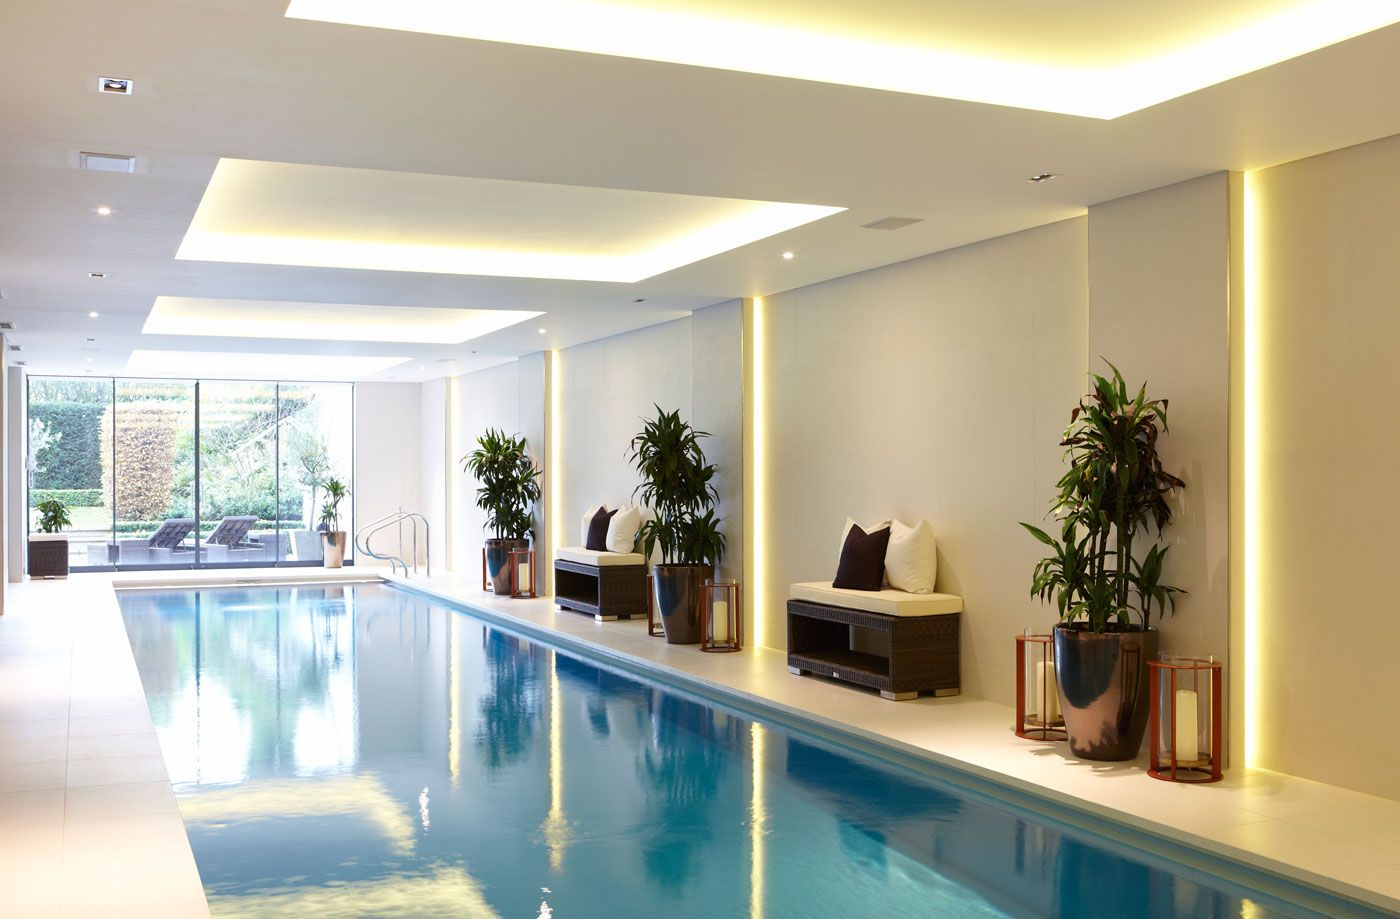 Decoraciones De Piscinas Indoor Lap Pool By Concept Bespoke Interiors Albercas